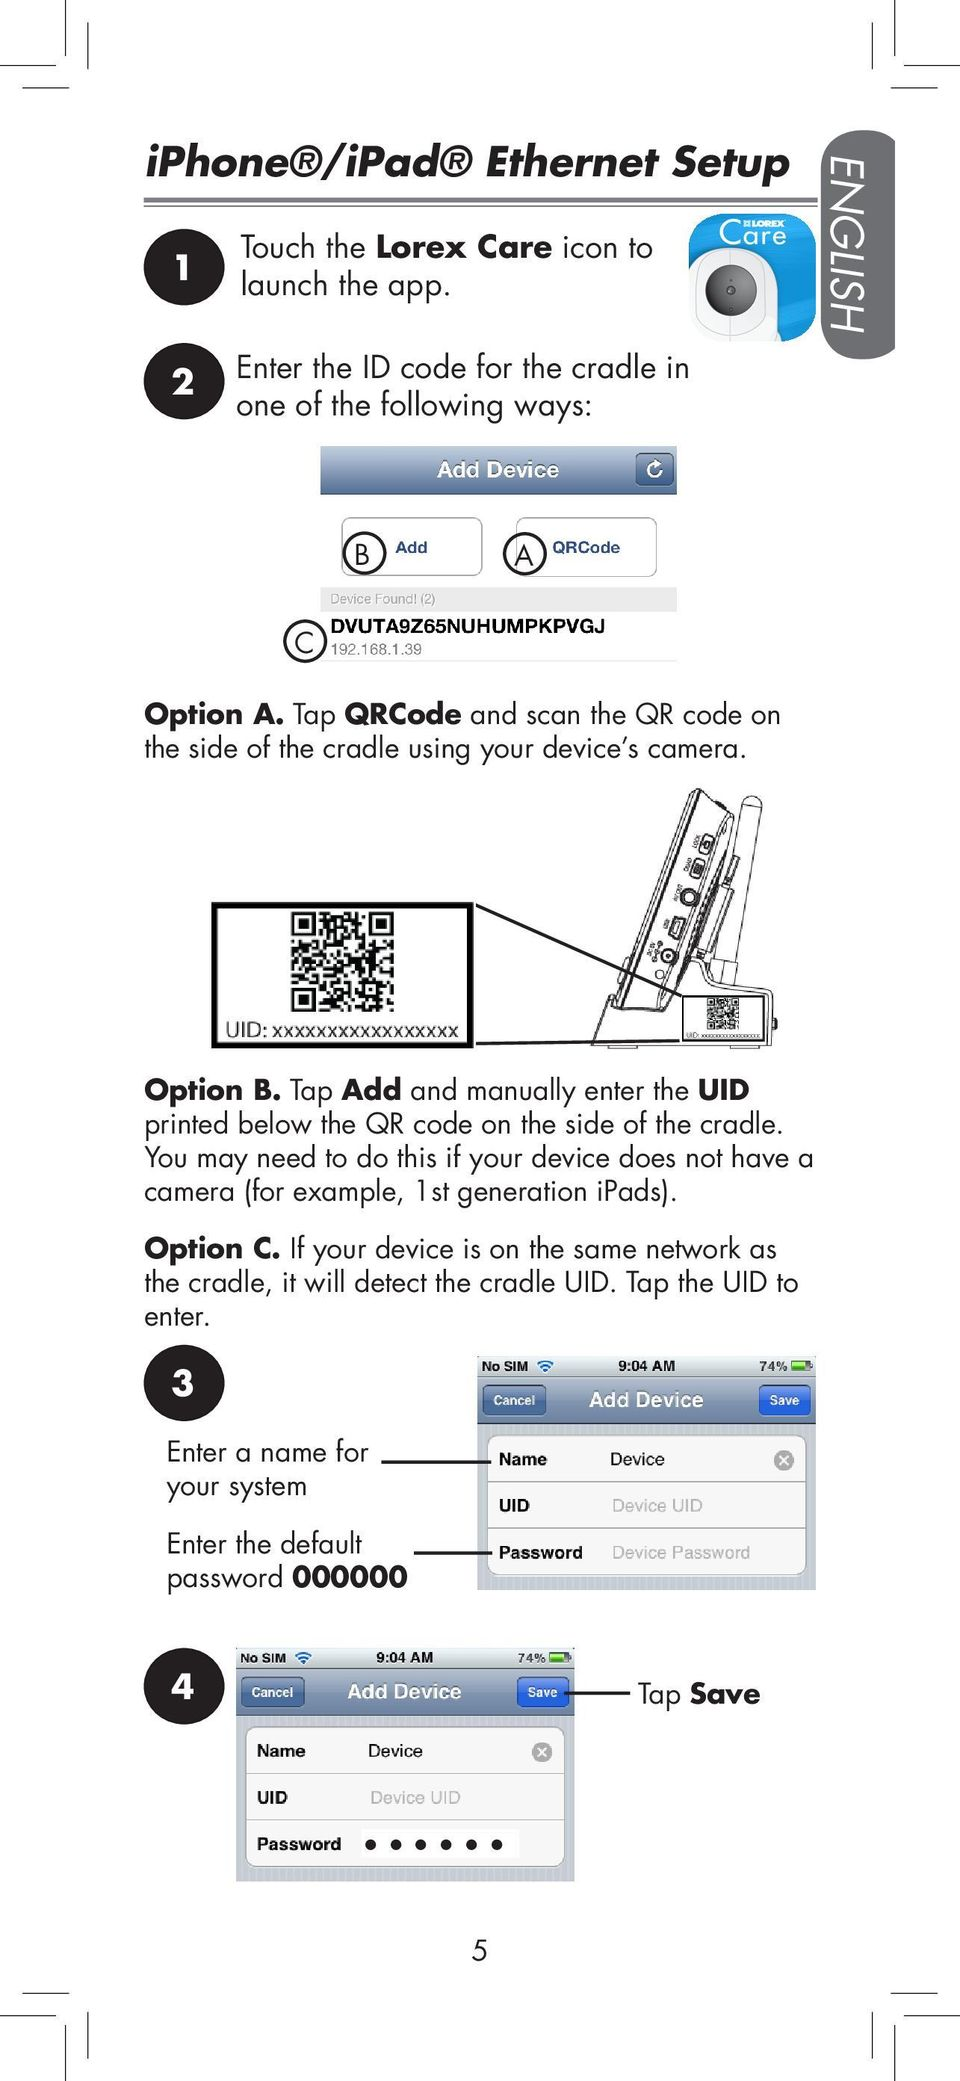 Tap QRCode and scan the QR code on the side of the cradle using your device s camera. Option B.